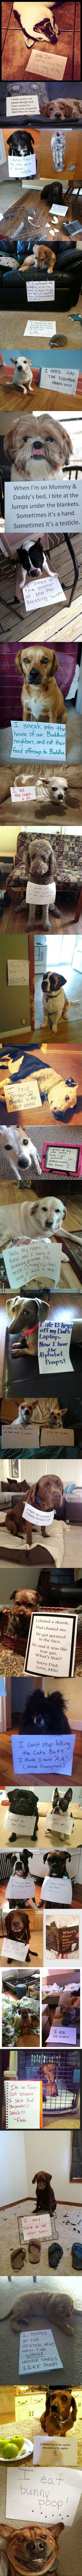 Its not people, but nothing makes me laugh harder than dog shaming #dogsfunnyfaces